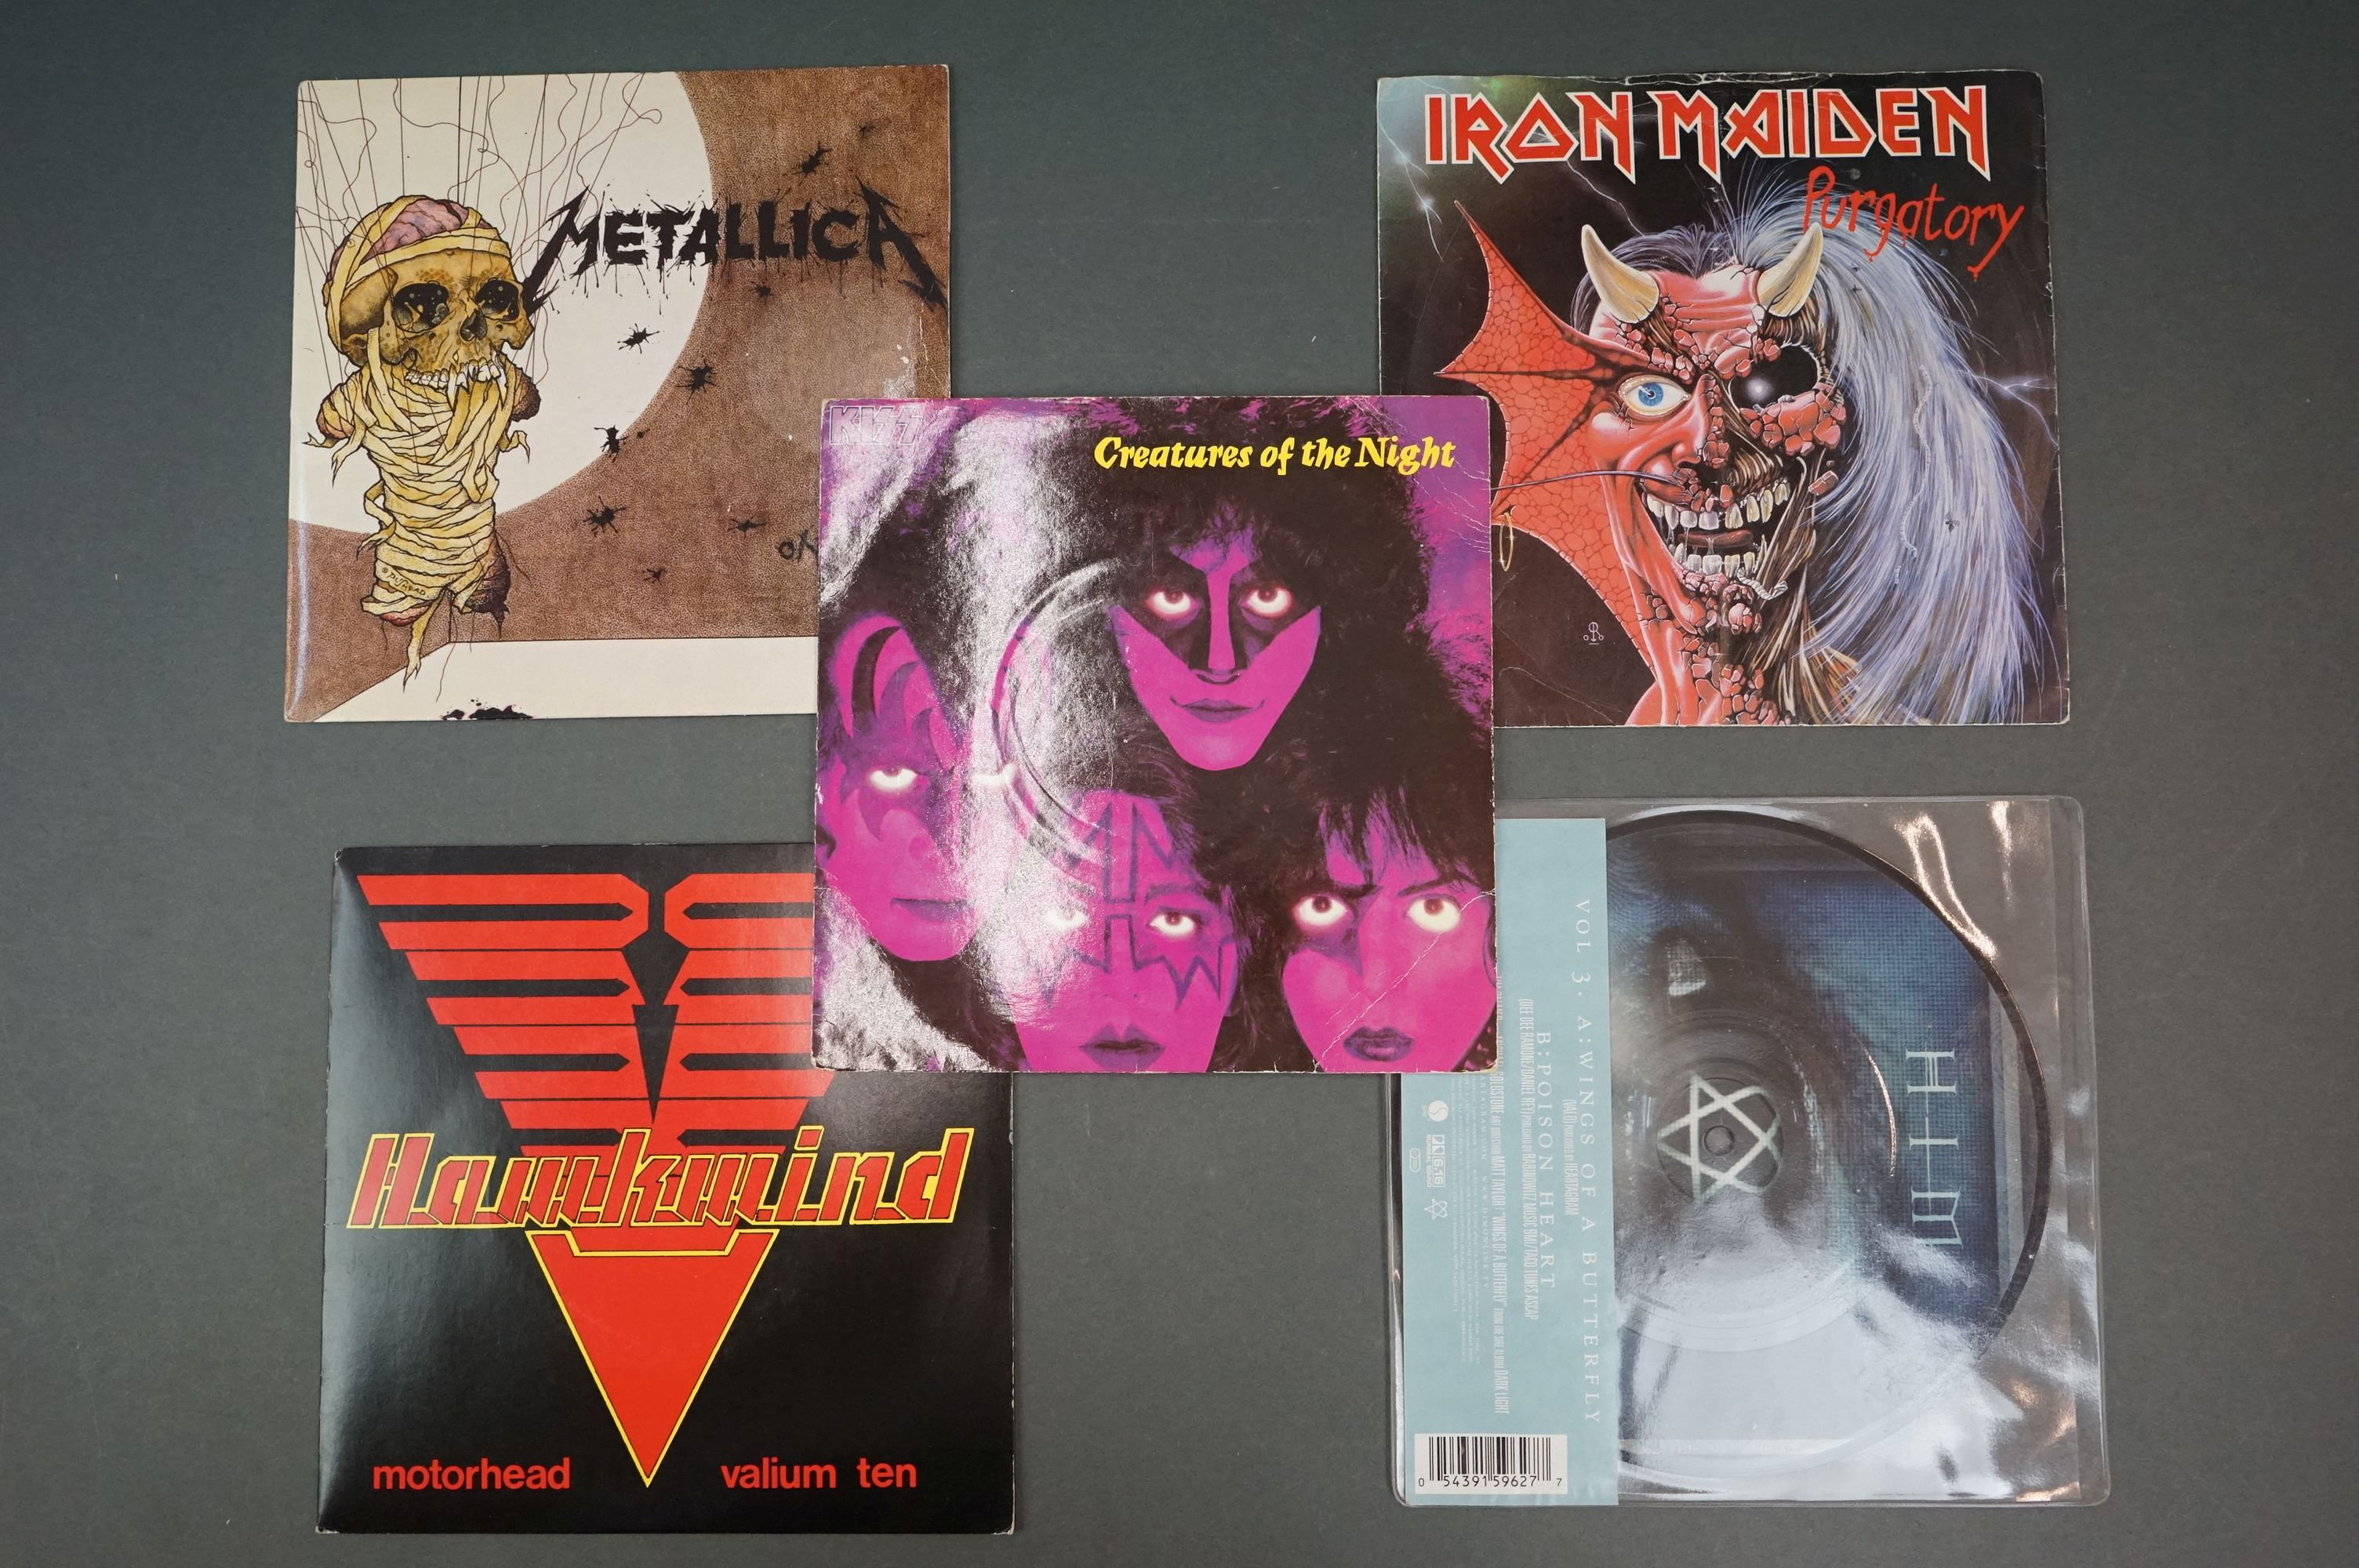 """Vinyl - Metal / Rock collection of 8 7"""" singles including Iron Maiden The Angel & The Gambler - Image 3 of 4"""